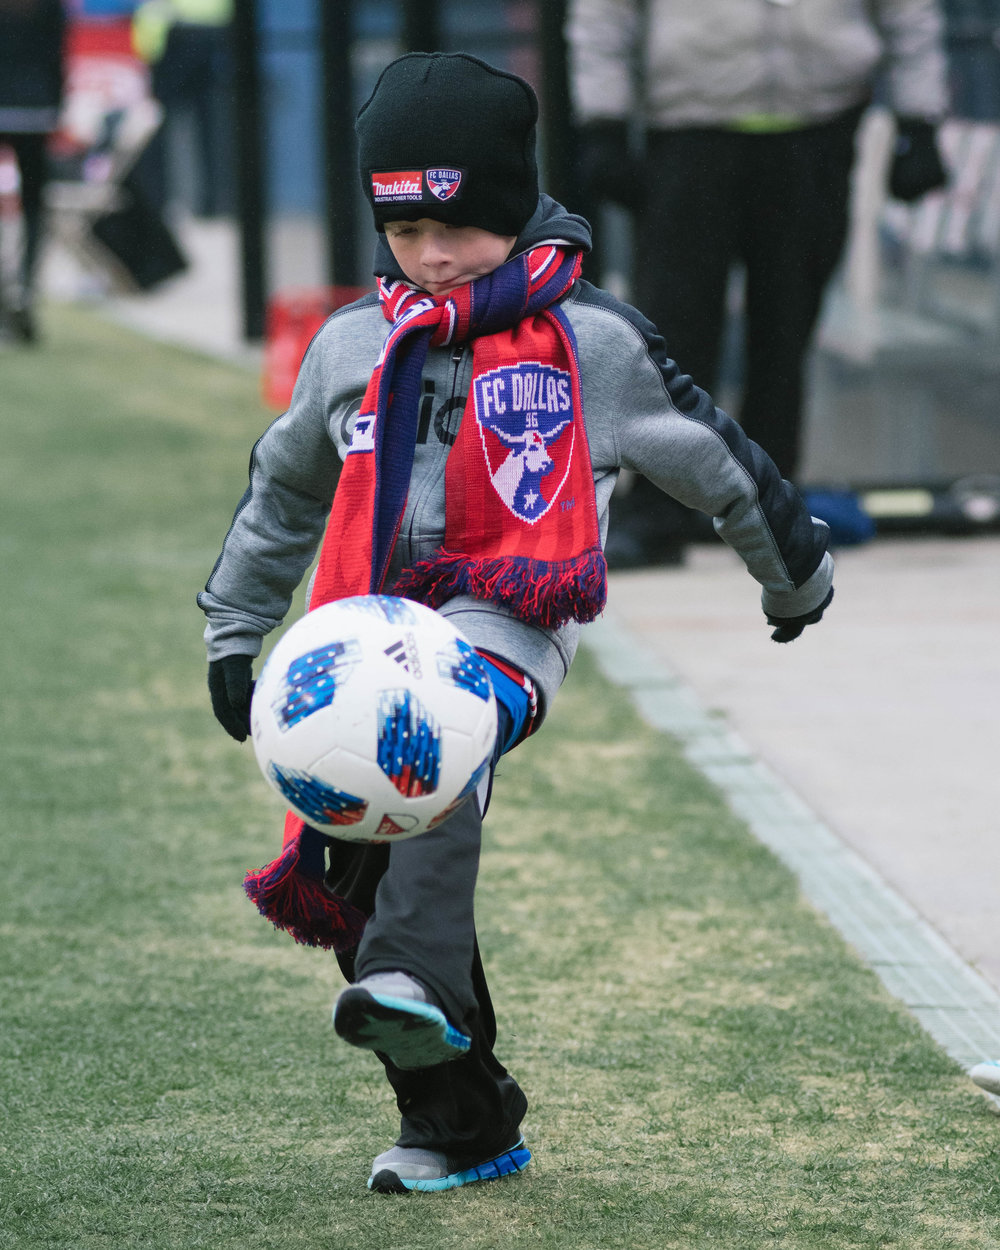 FC Dallas ball boy juggles a new MLS ball. | Shot with Nikon D500 w/ Nikkor 80-200 f2.8